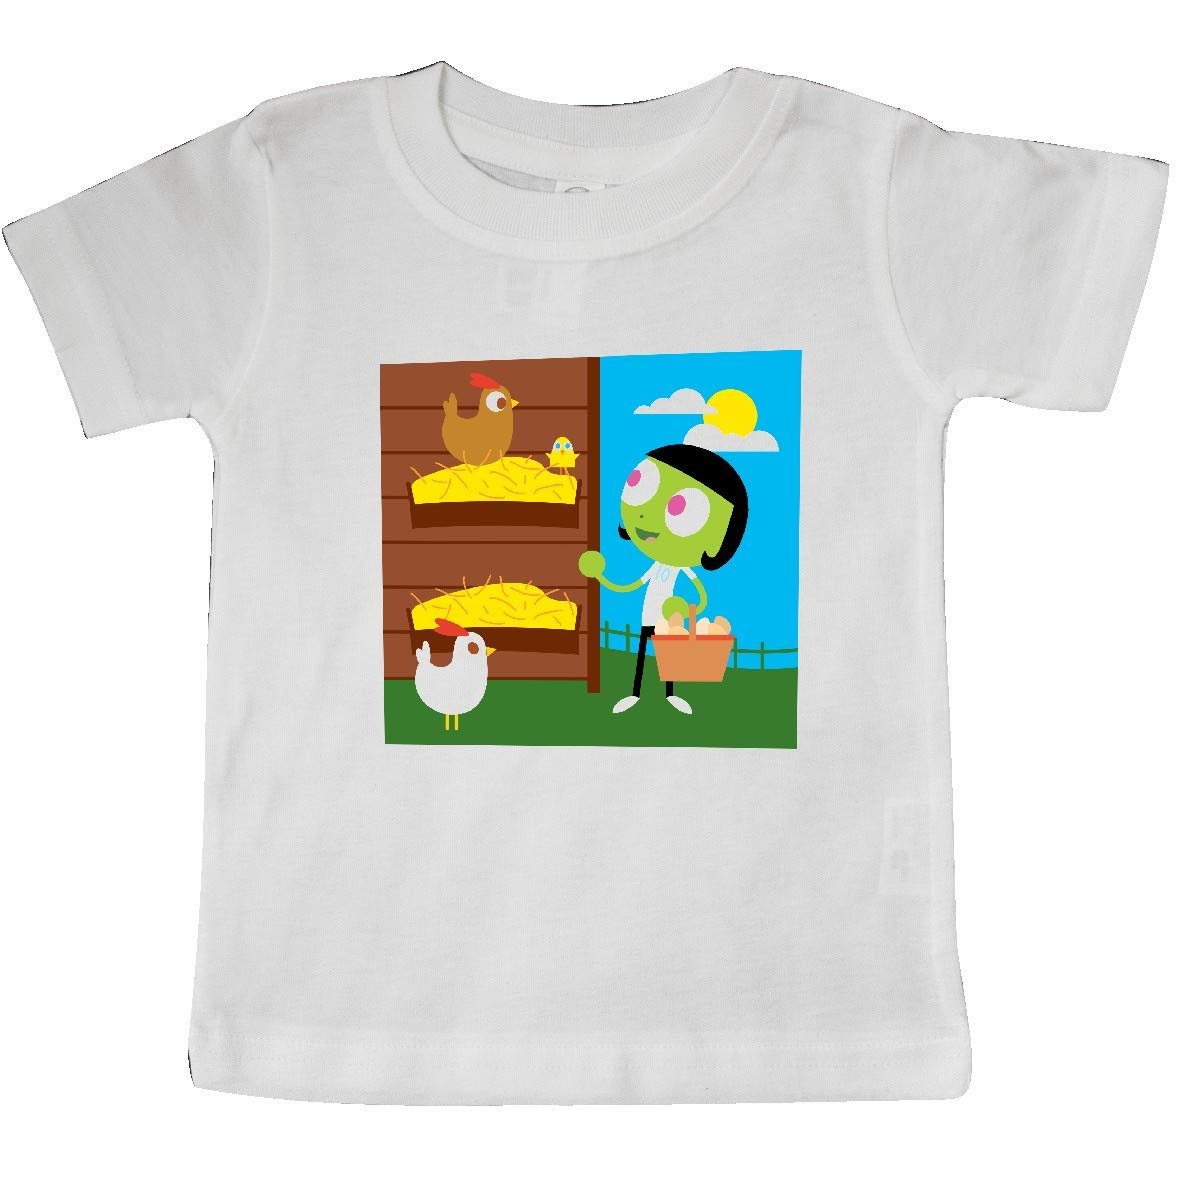 inktastic Dot Finds a Chick Baby T-Shirt PBS Kids